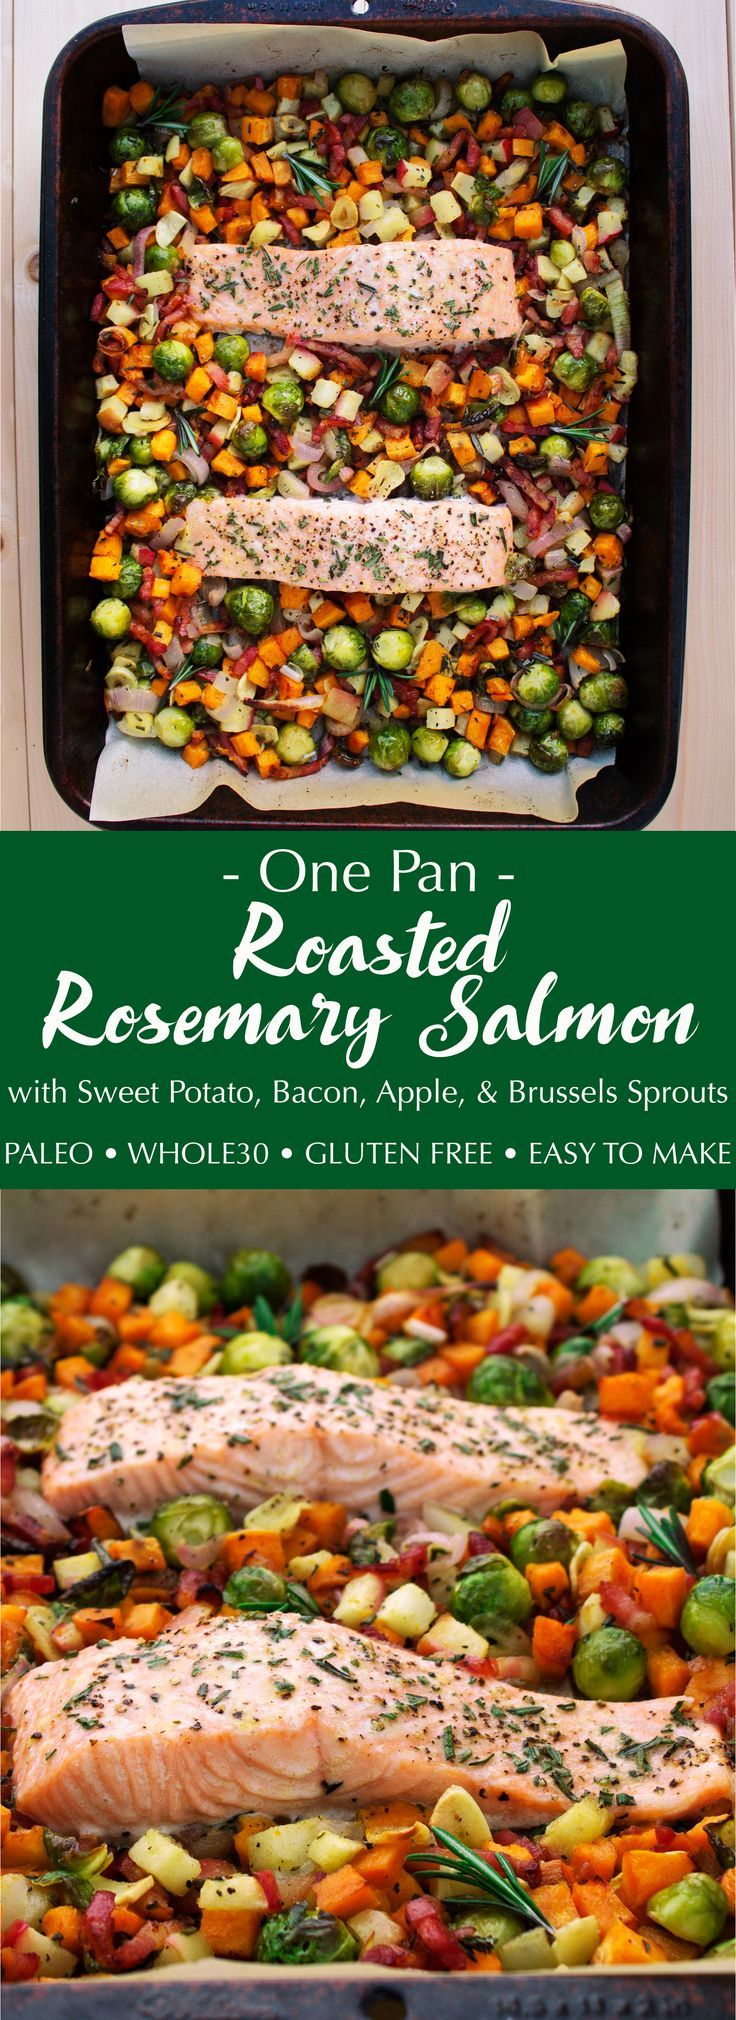 This one pan dinner is perfect for an easy weeknight meal. Roasted salmon accompanied by delicious fall veggies. And it's all paleo and Whole30!